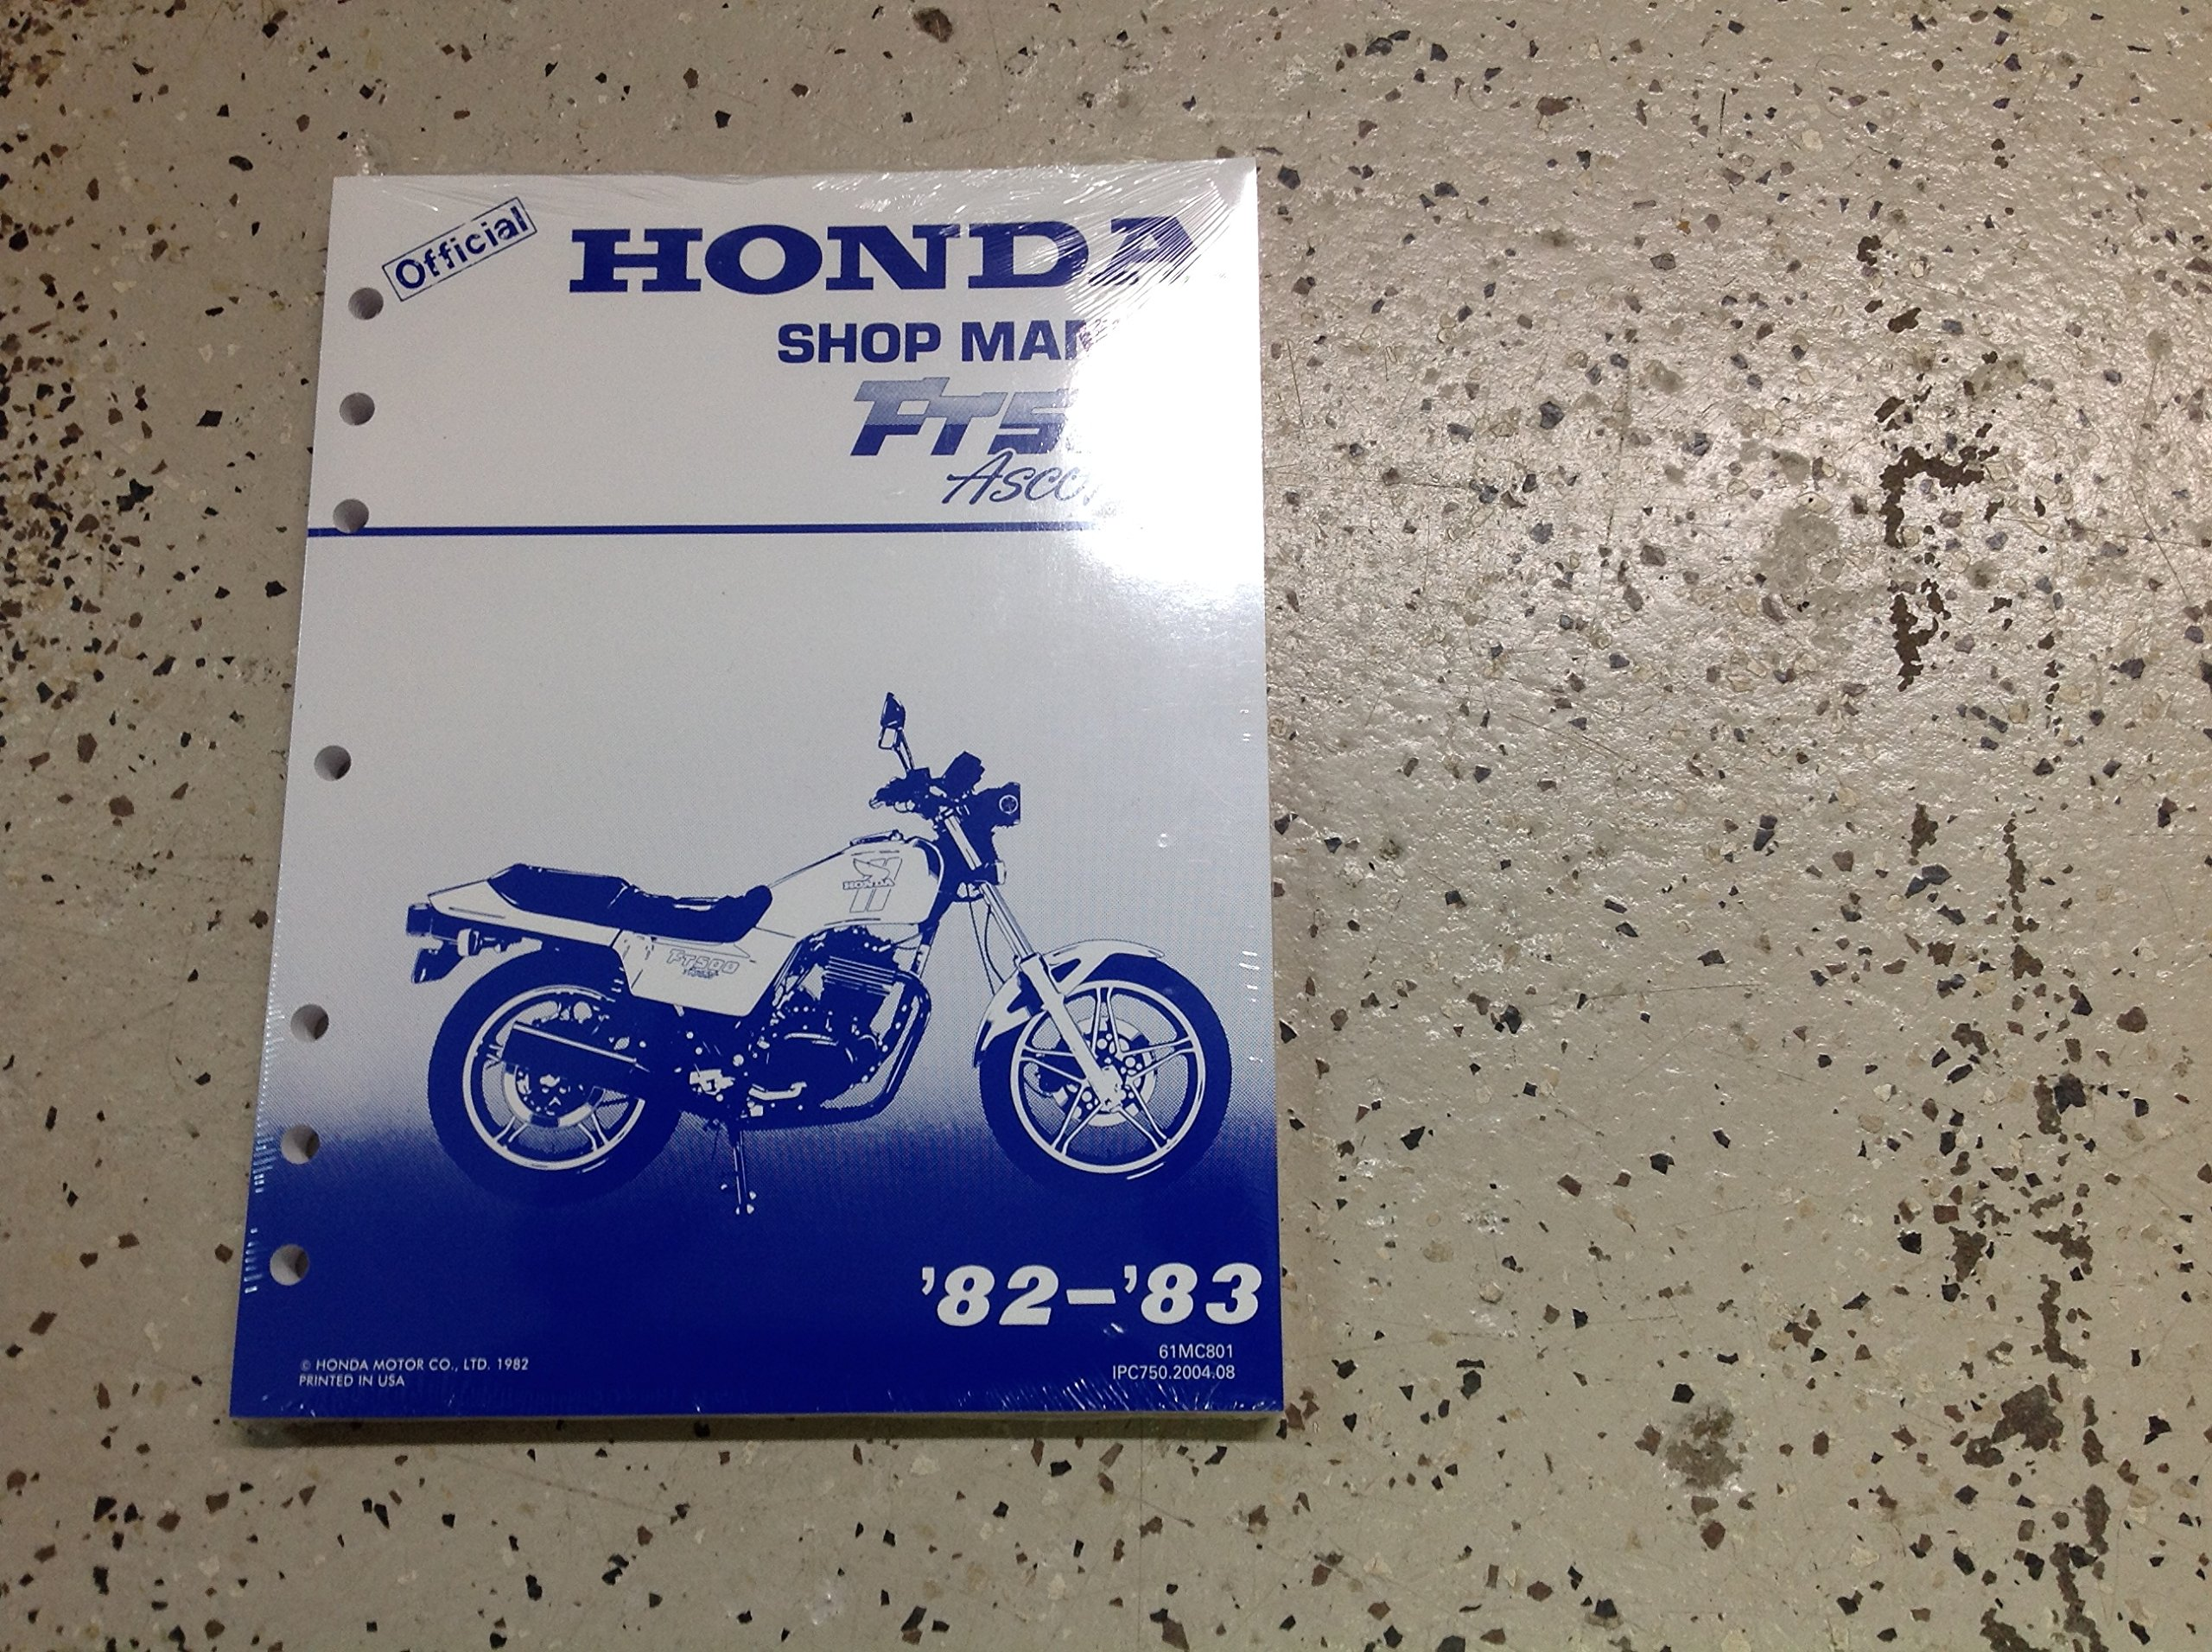 1982 1983 HONDA FT500 ASCOT Service Shop Repair Manual FACTORY NEW  DEALERSHIP: honda: Amazon.com: Books